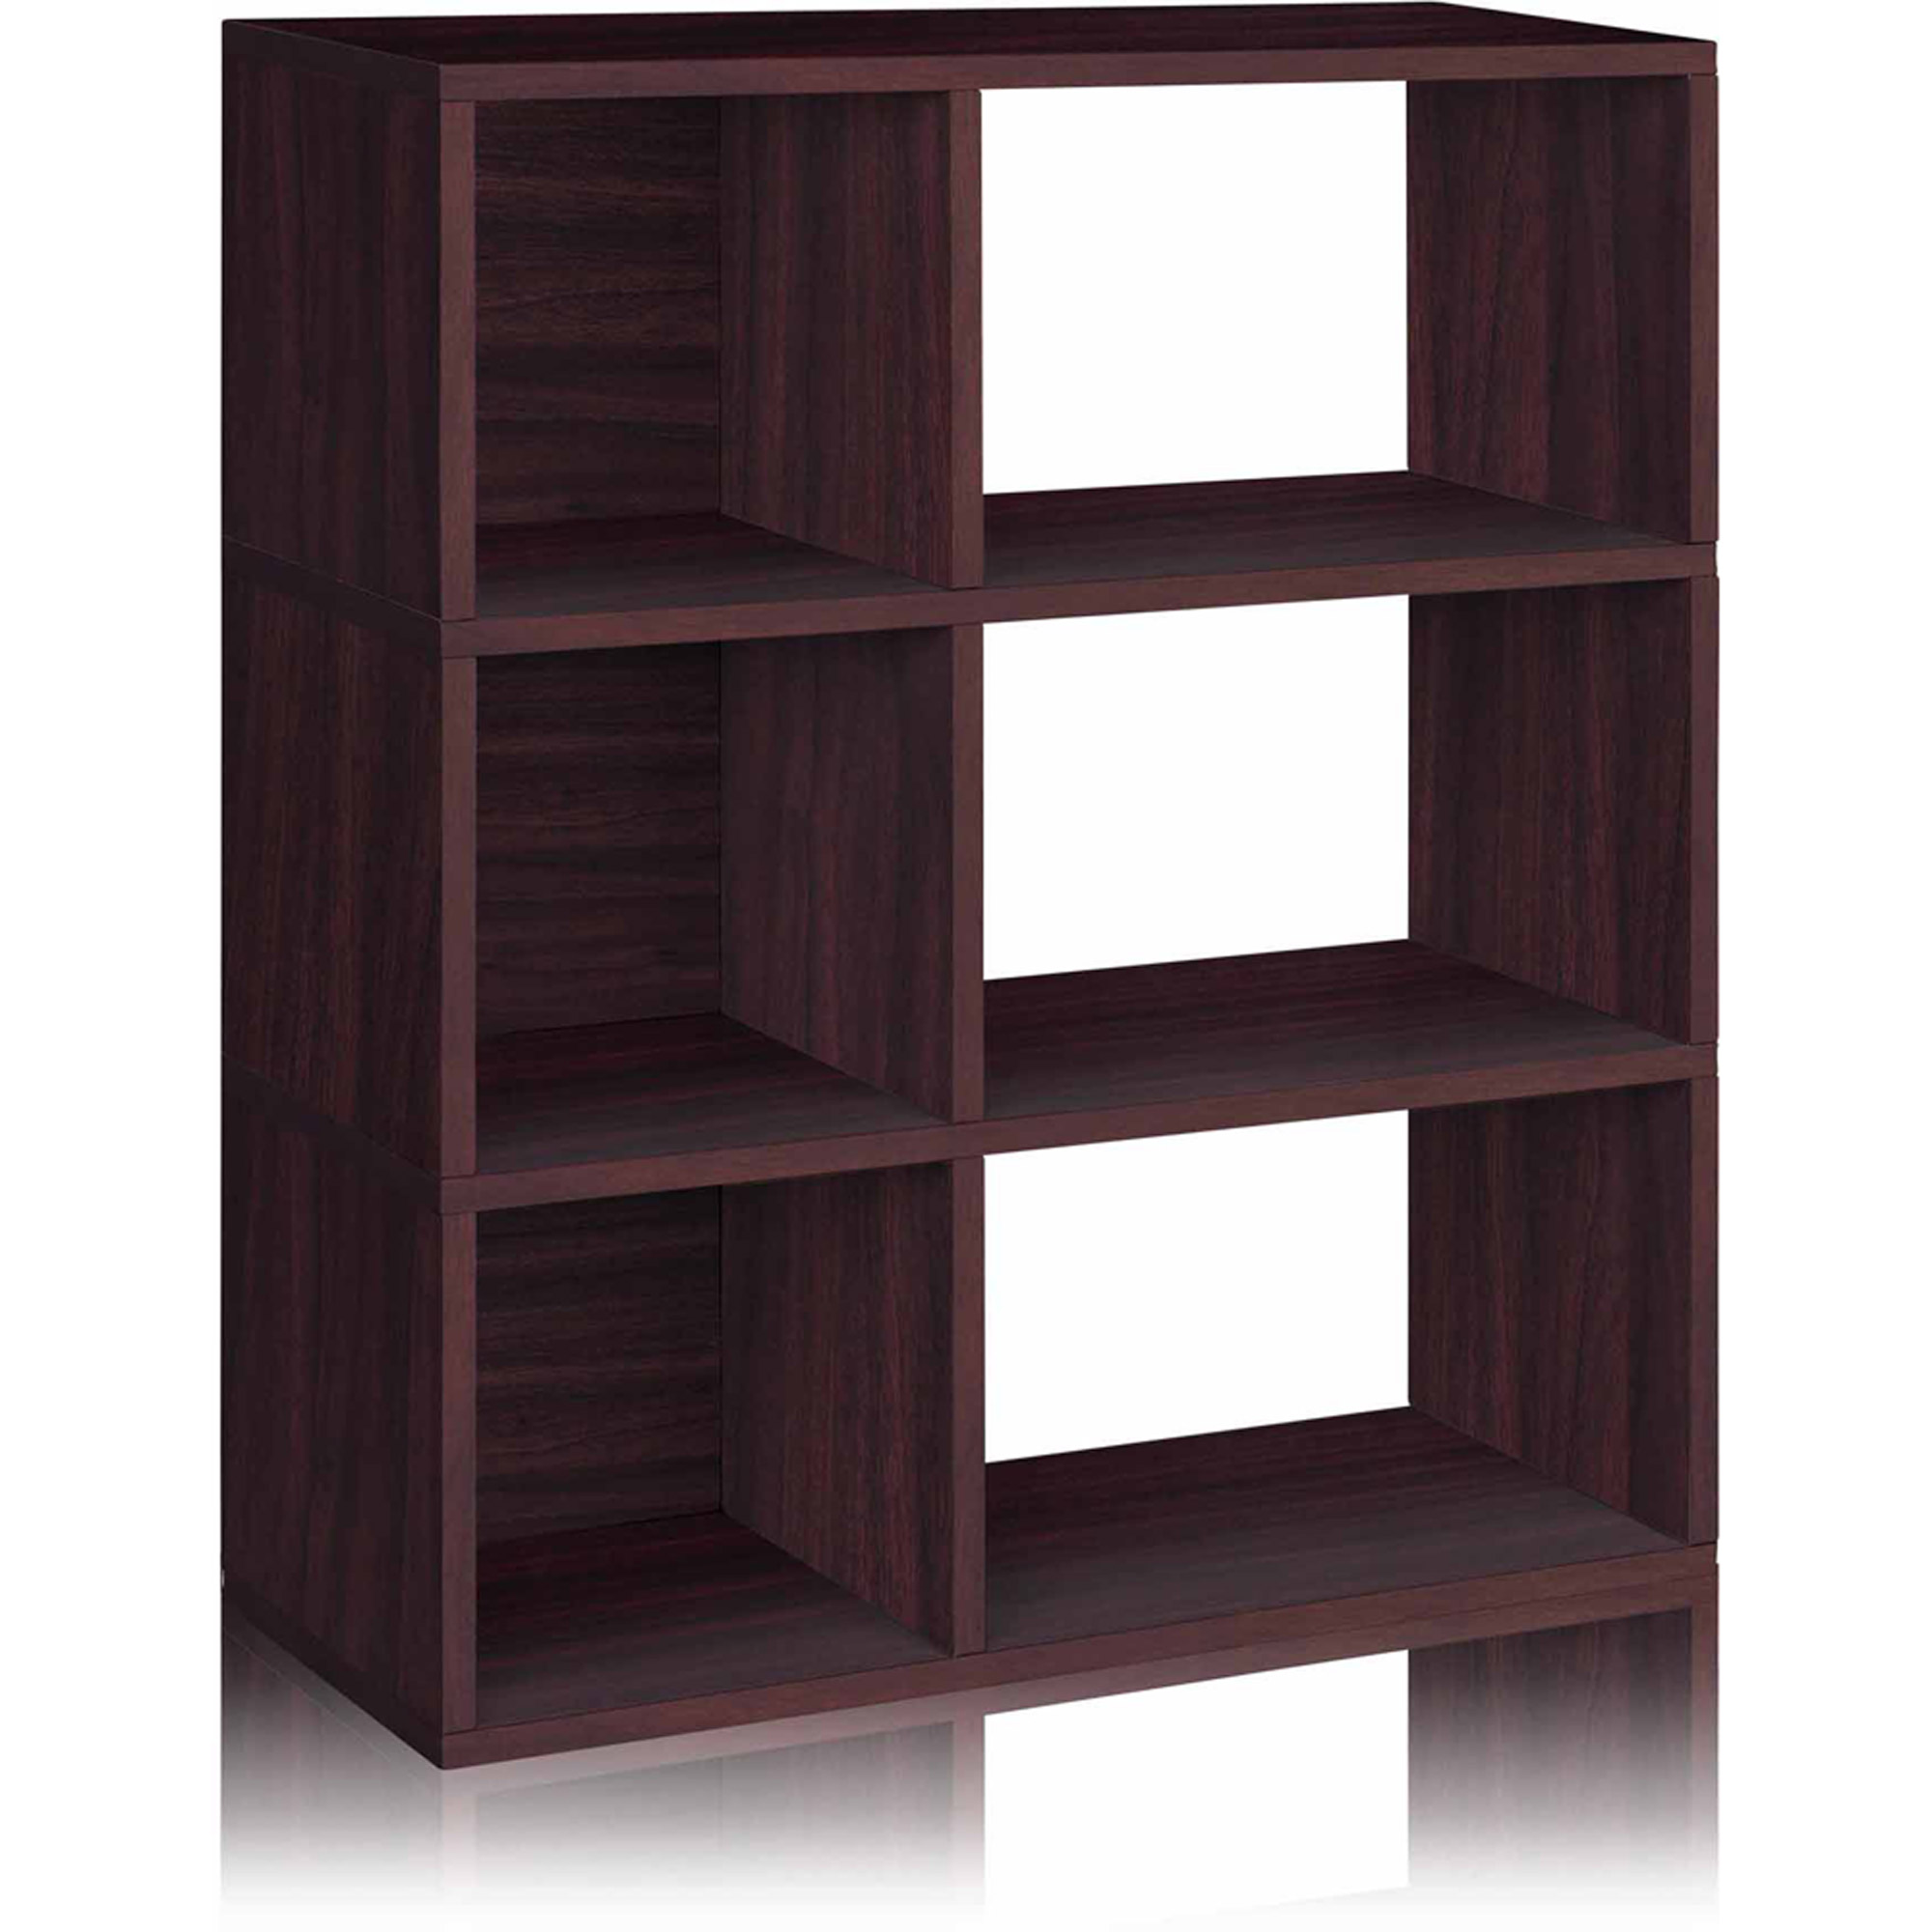 Way Basics Eco 3-Shelf Sutton Bookcase and Cubby Storage, Espresso